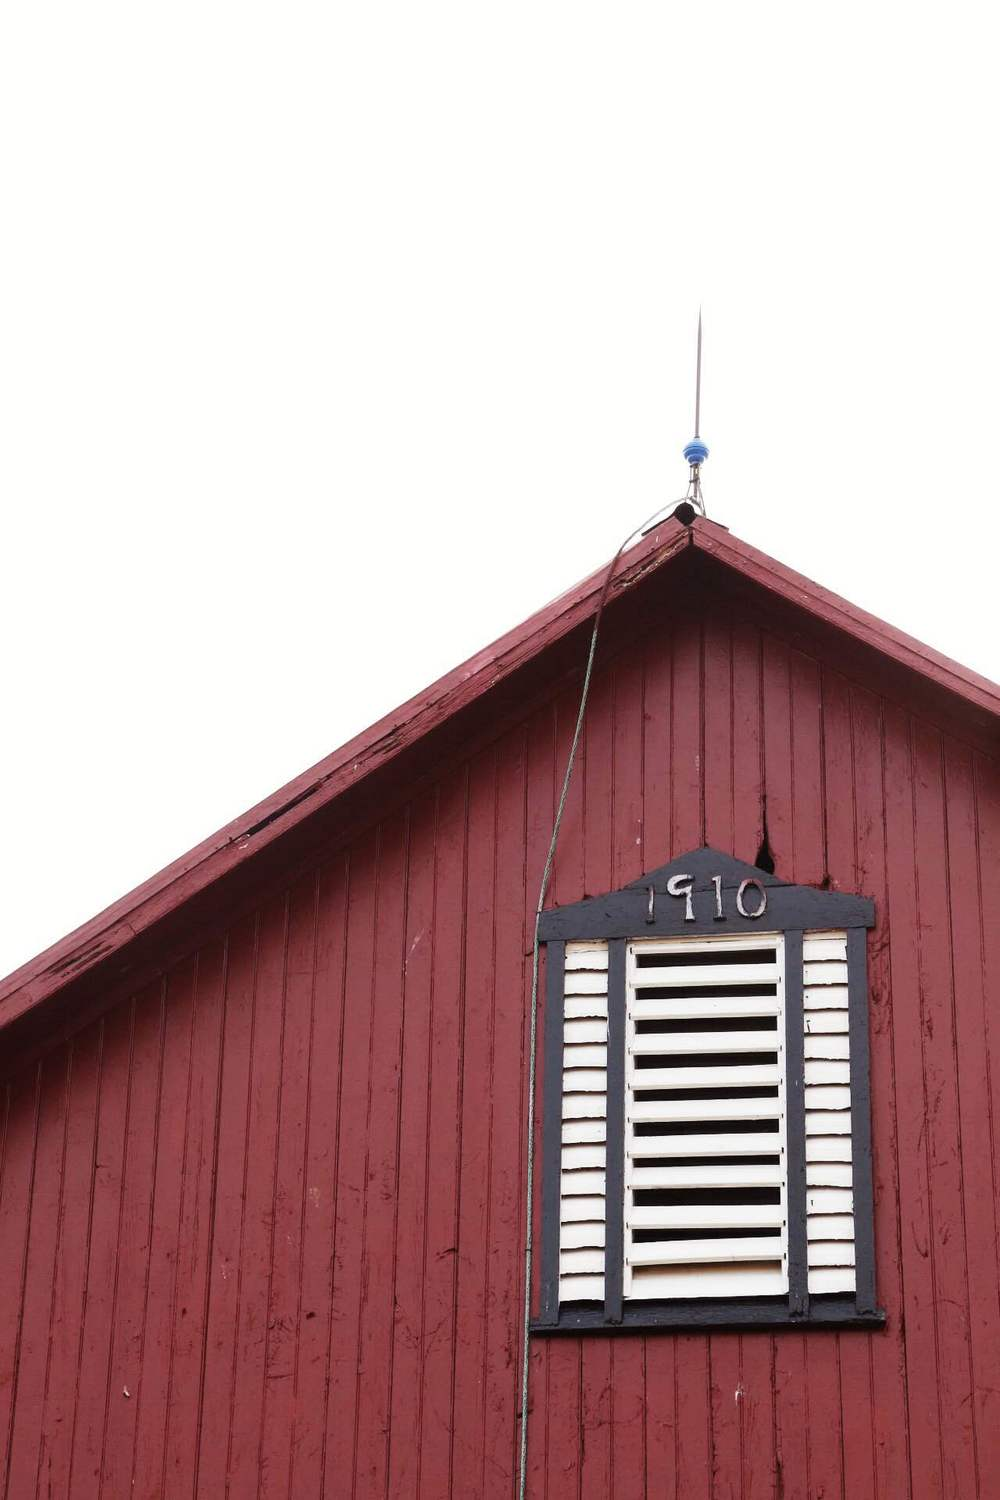 The big red barn. Timber frame barn built in 1910.